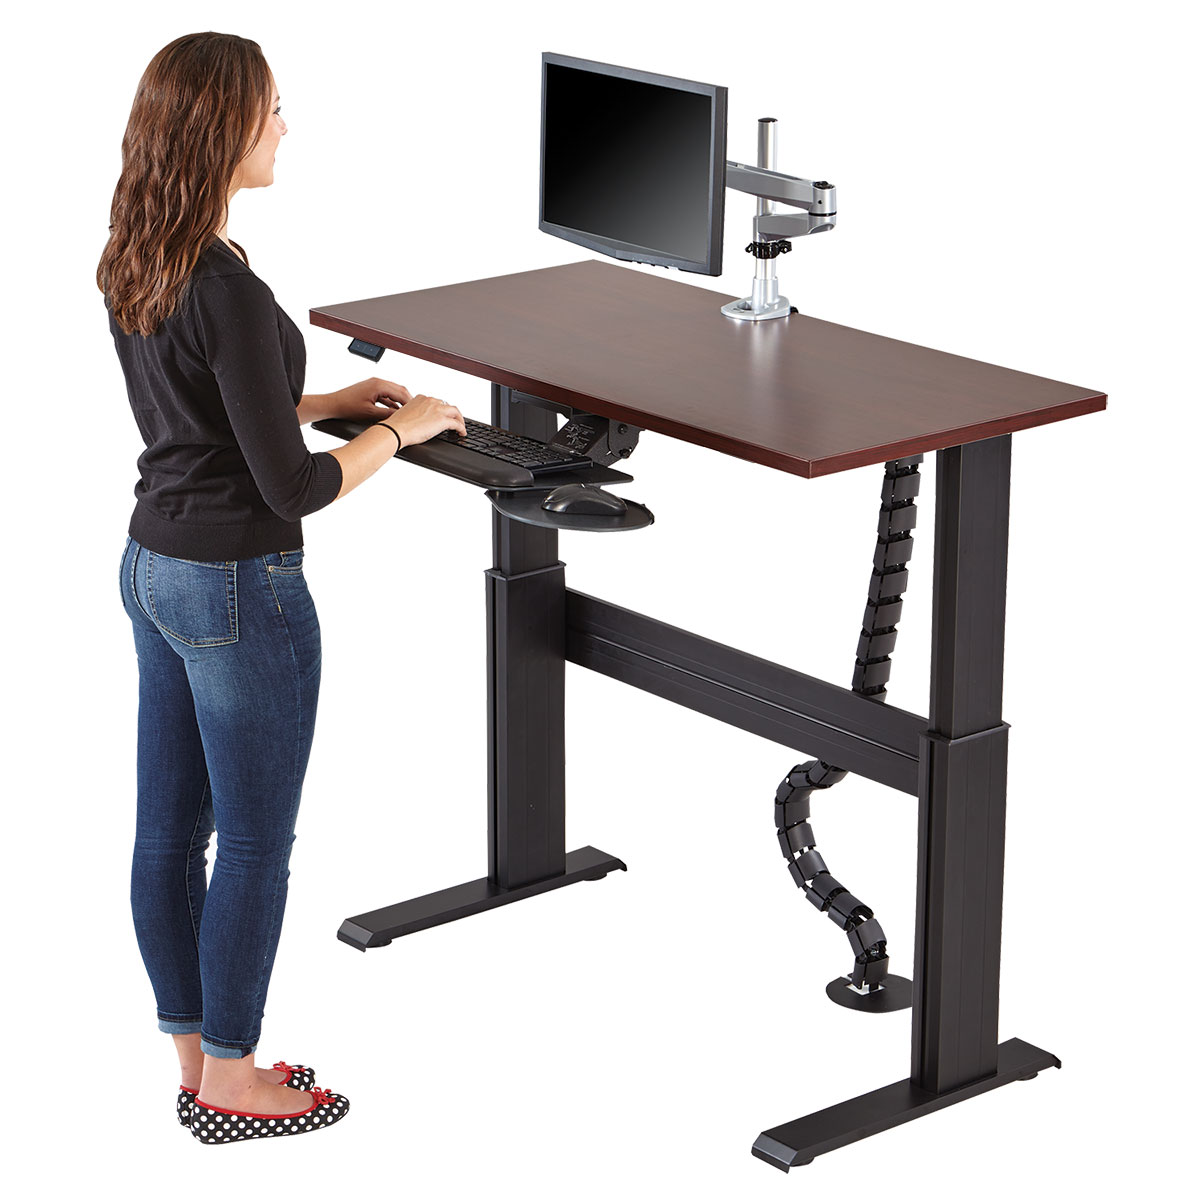 sit stand desk charlotte nc - Sit Stand Desk